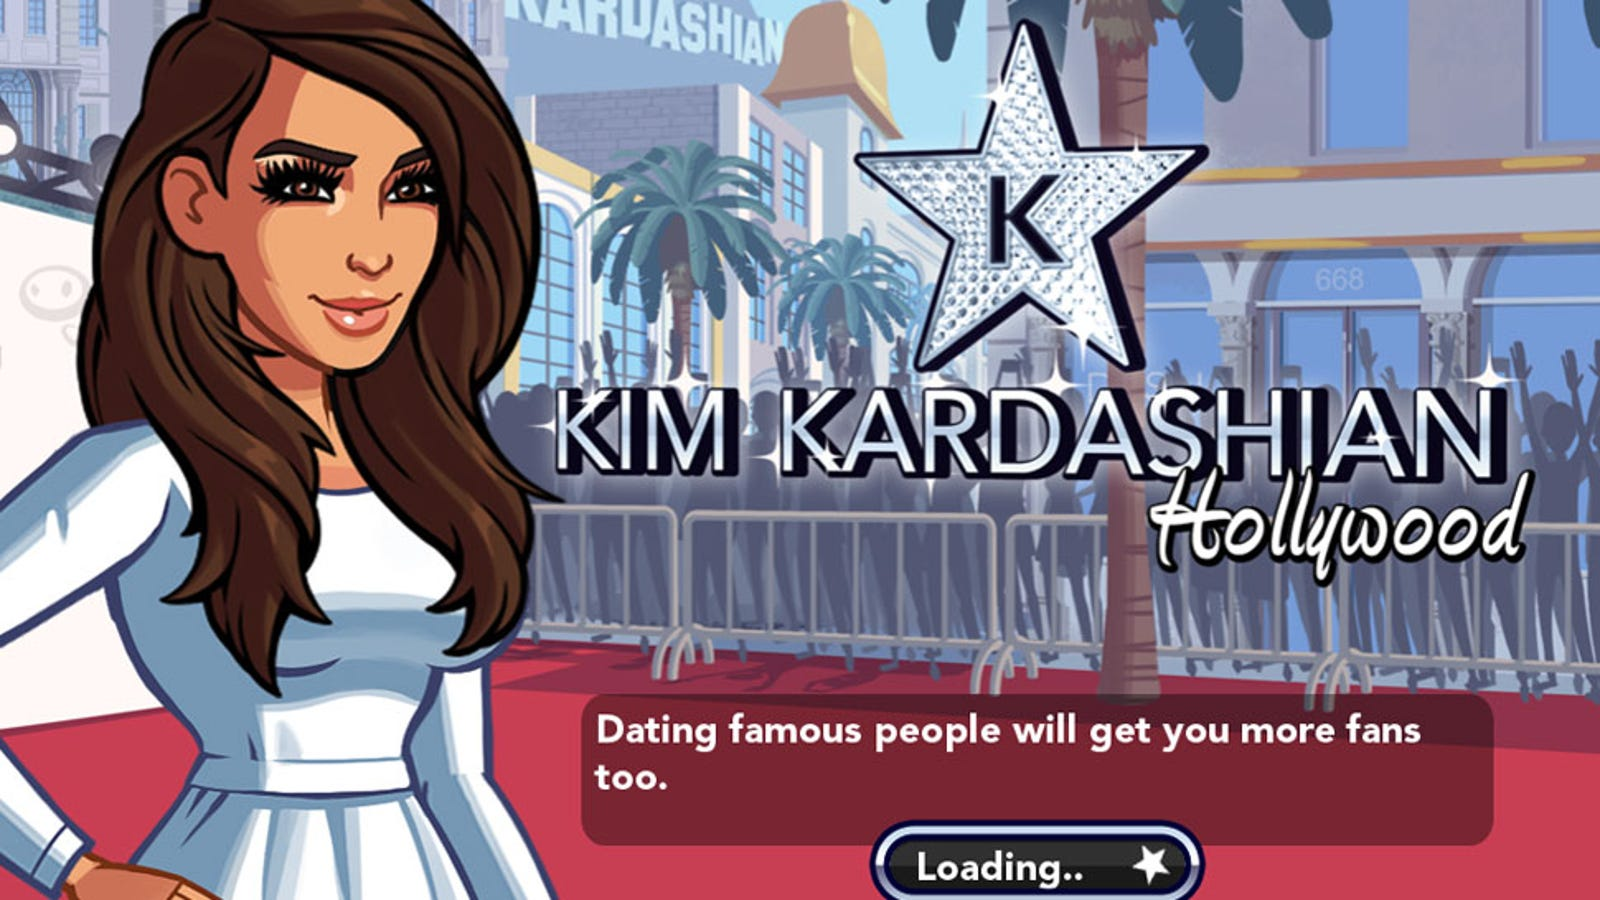 Kim Kardashian's App Earned How Much This Year